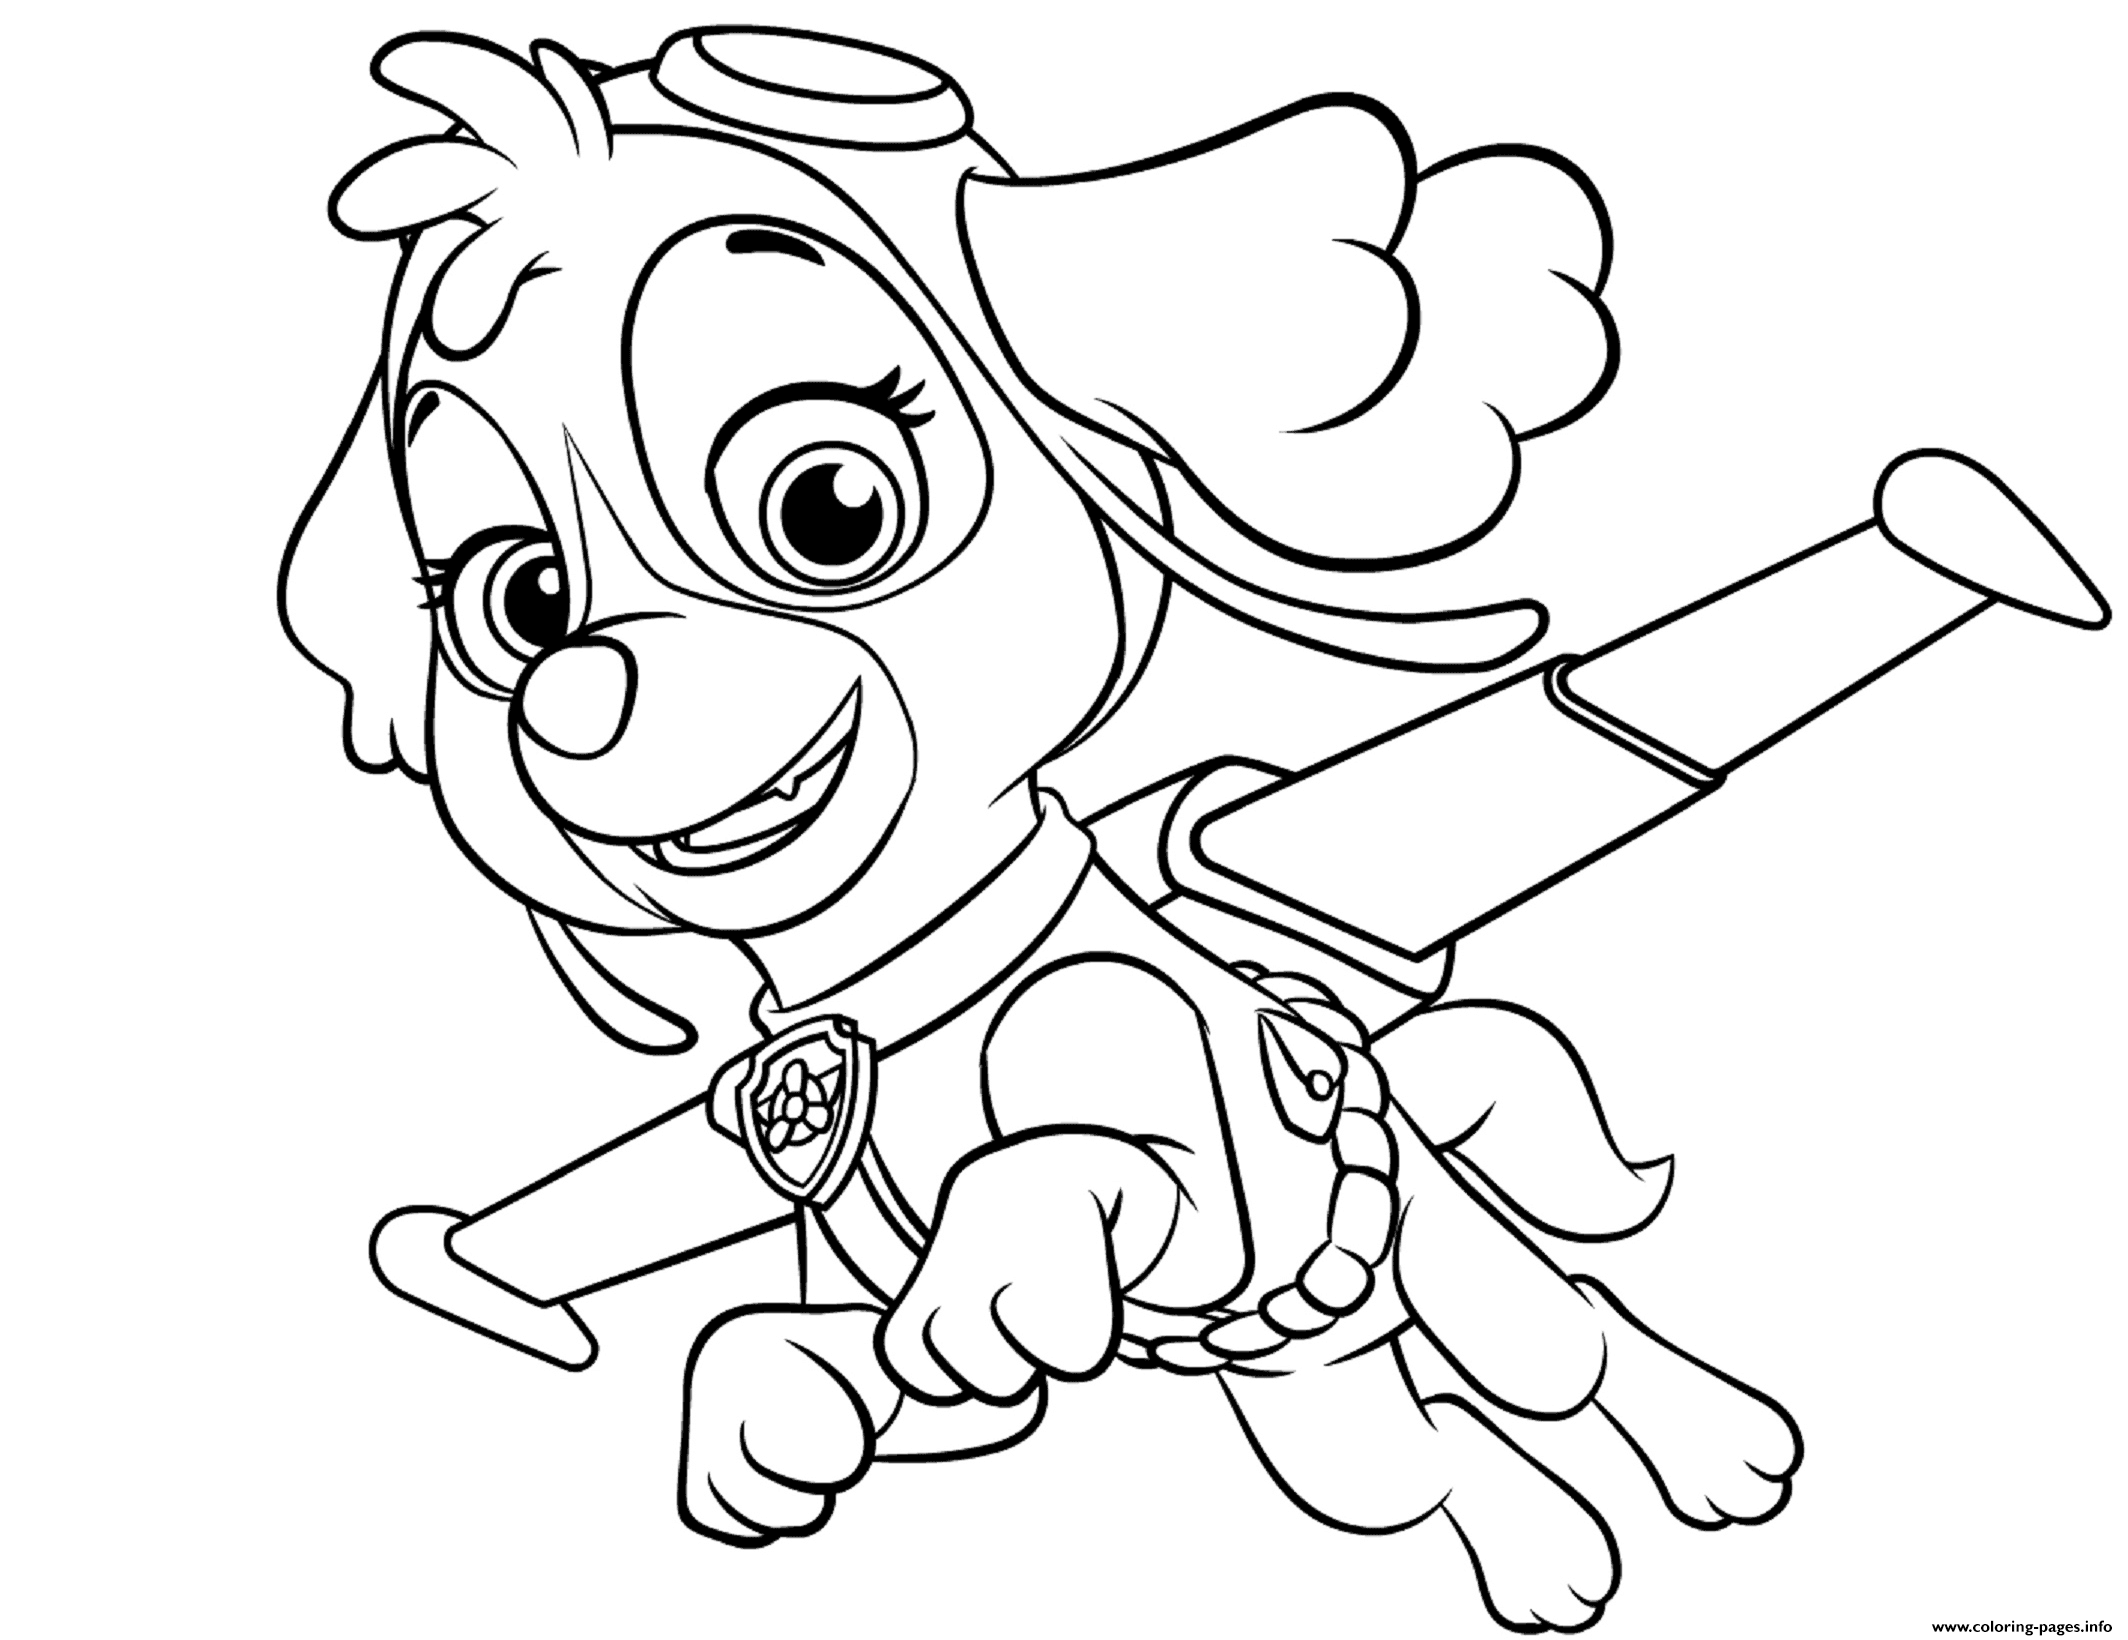 Pin By Shirley Henslin On Wall Art Paw Patrol Coloring Paw Patrol Coloring Pages Paw Patrol Printables